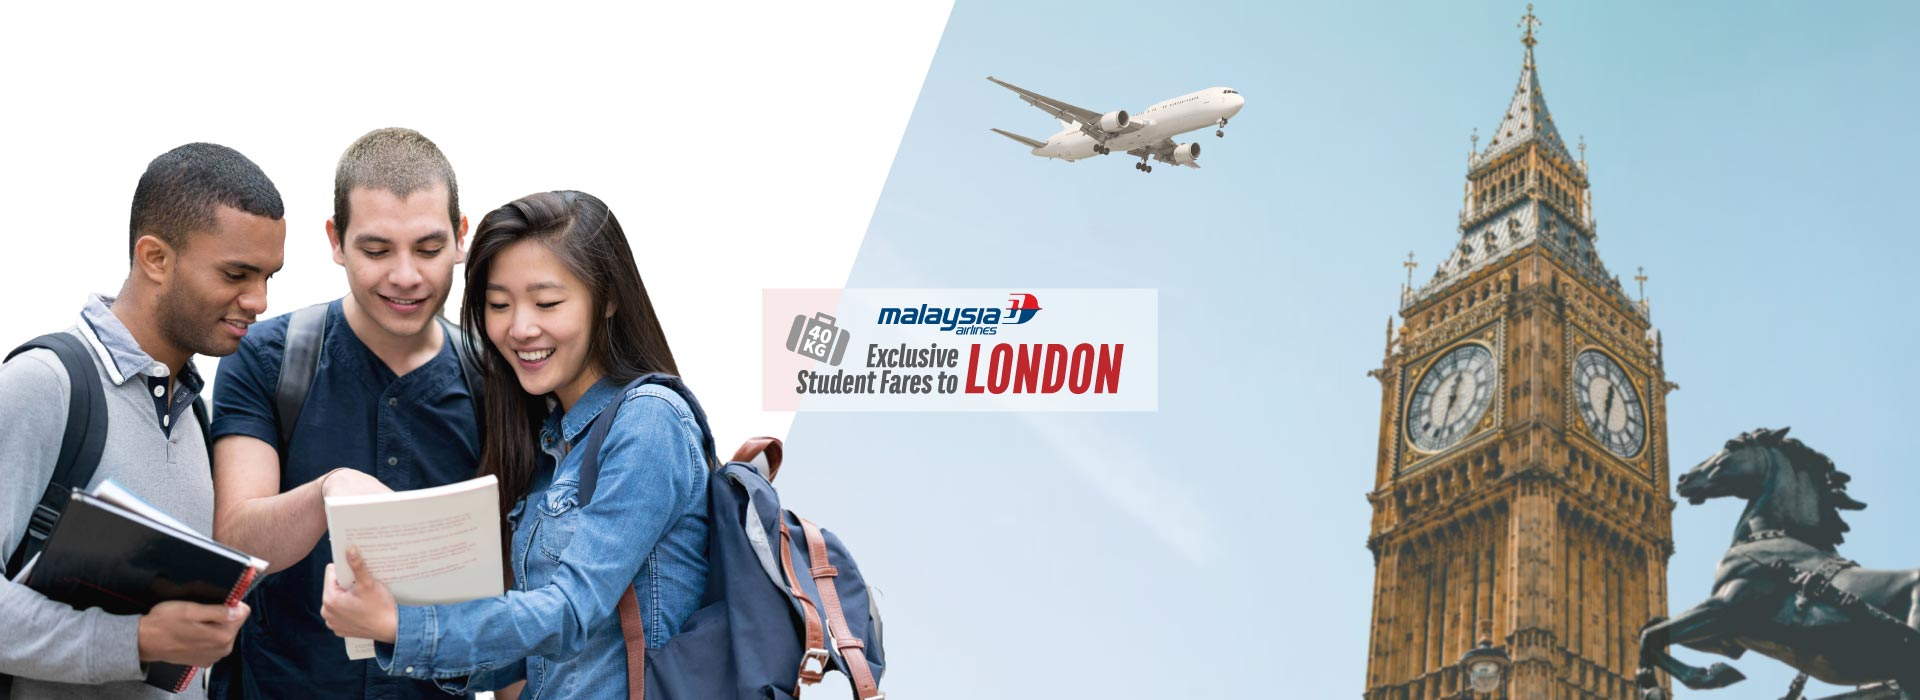 Exclusive Student Fare to London on Malaysia Airlines Student WB Aug2021 3